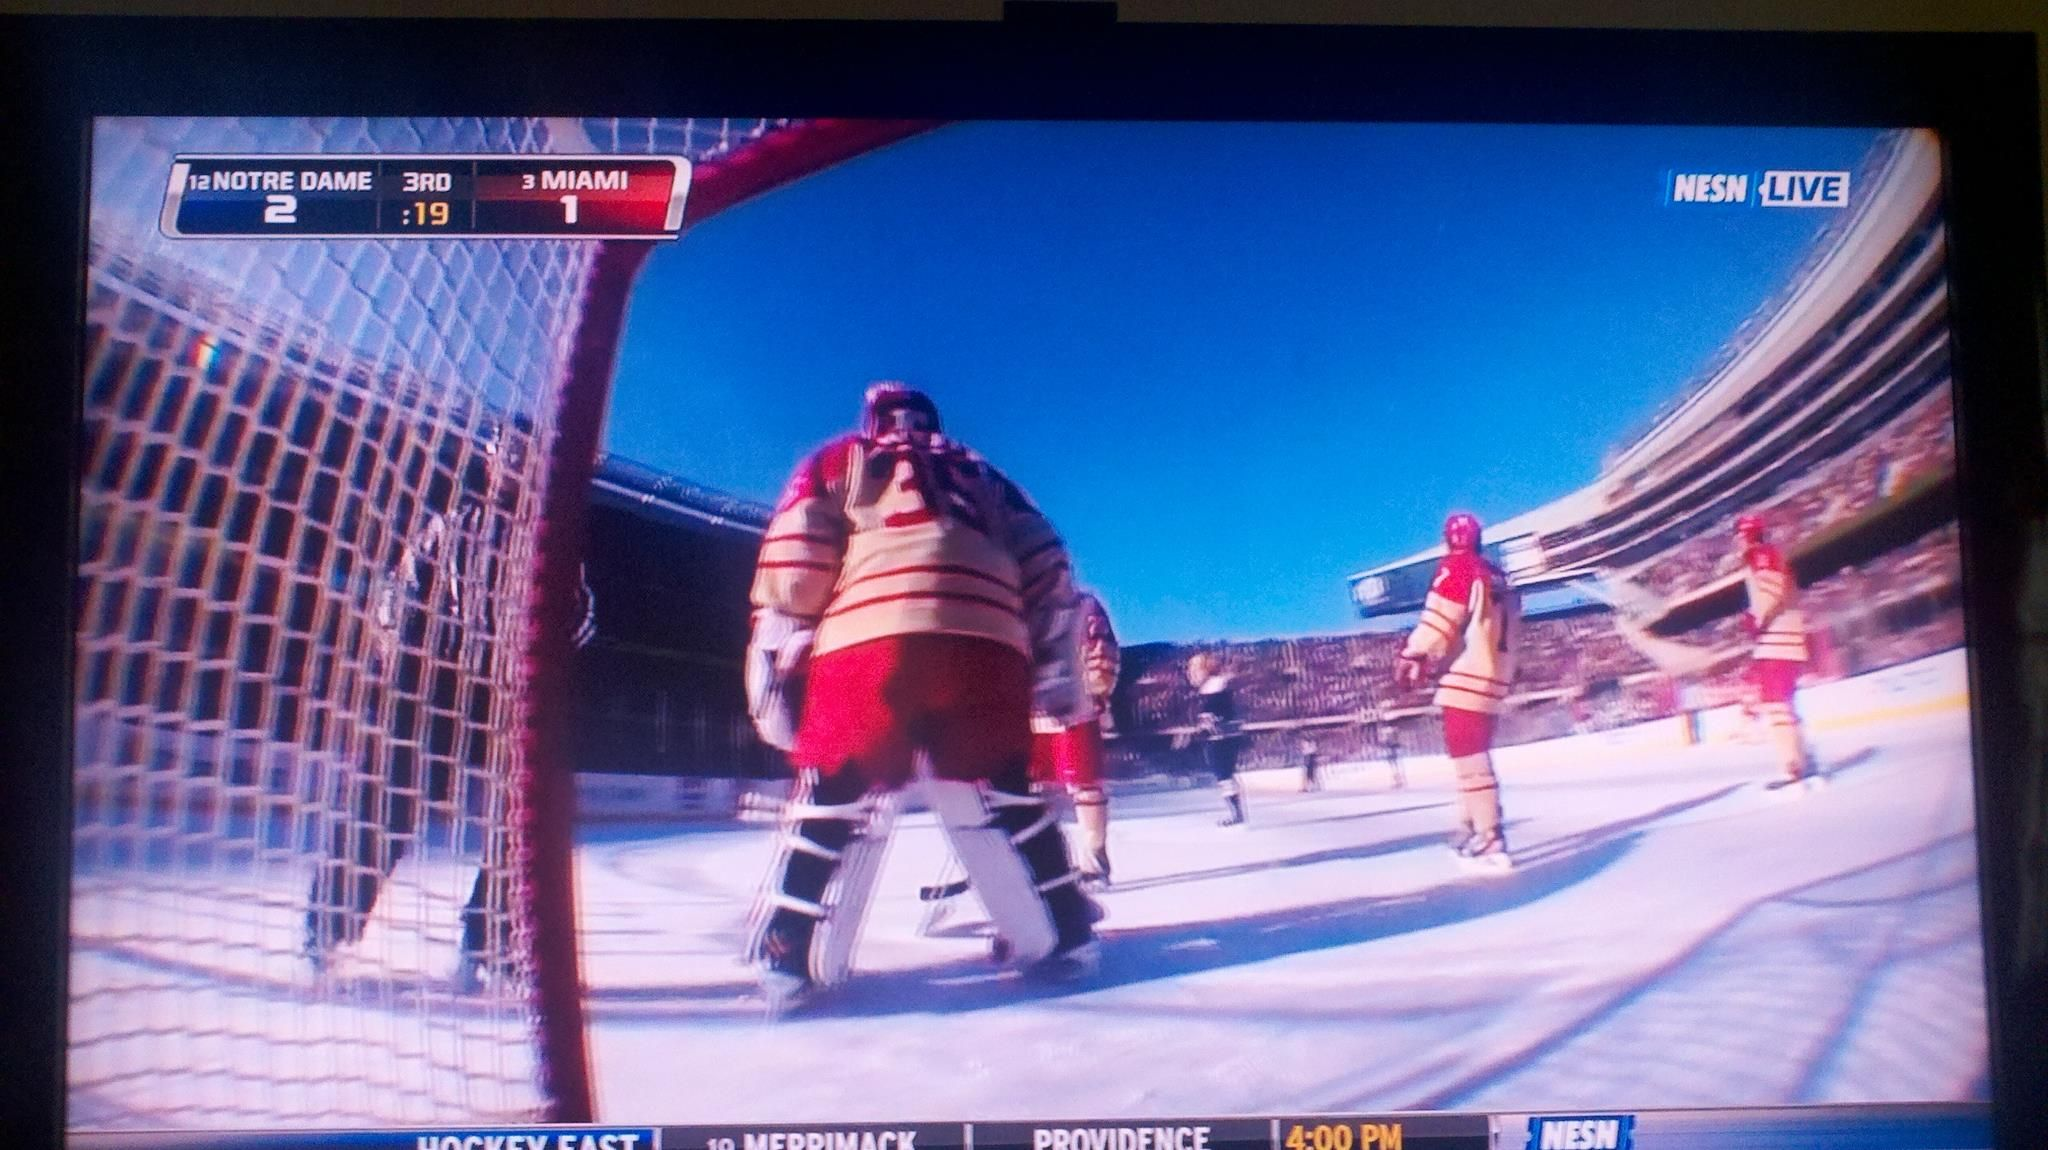 Outdoor college hockey at Soldier Field - Miami (OH) vs ...